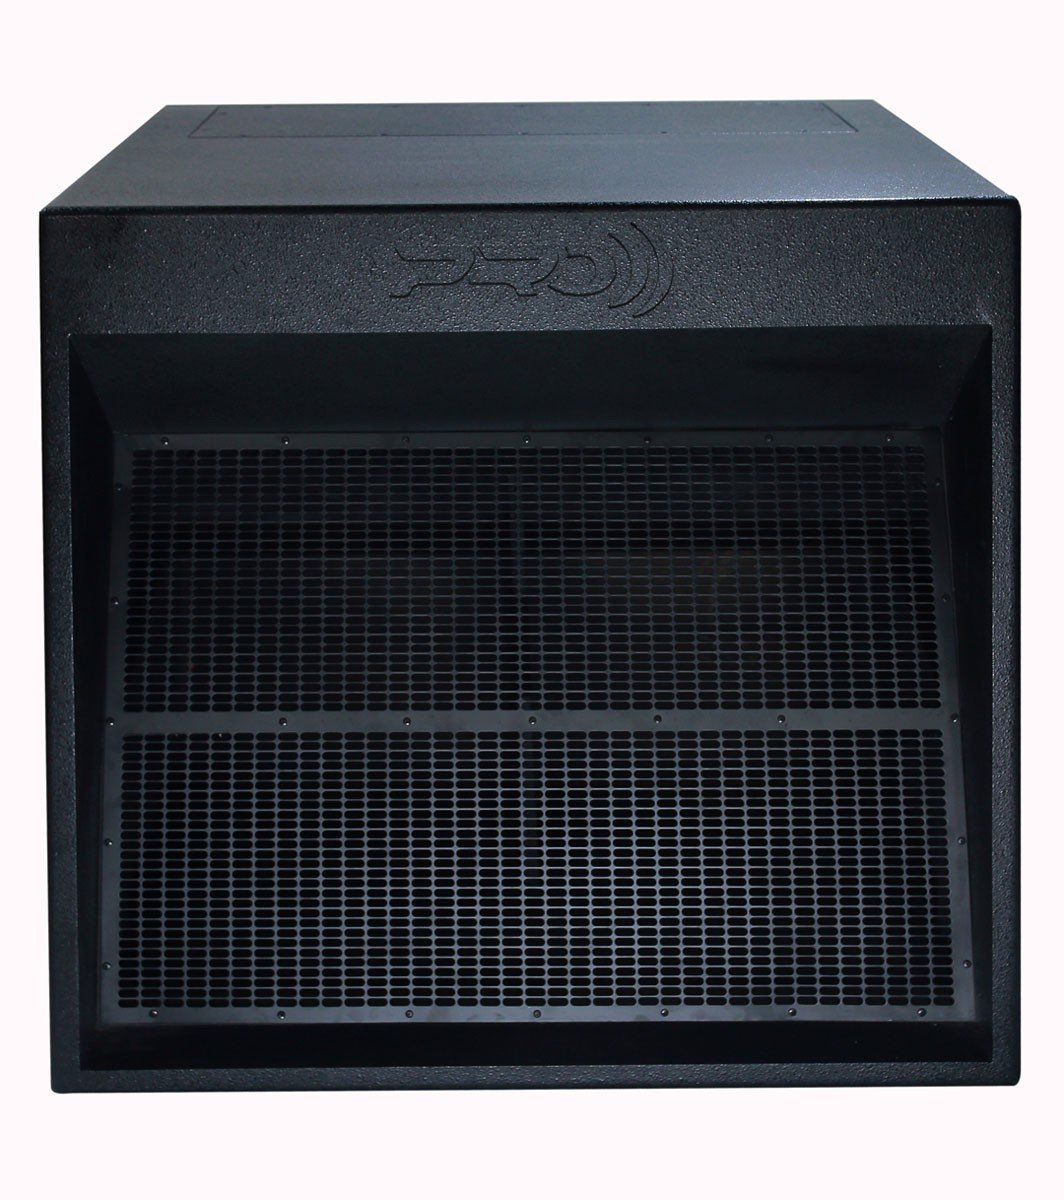 LOA PRO ACOUSTIC SOLUTION i-212S